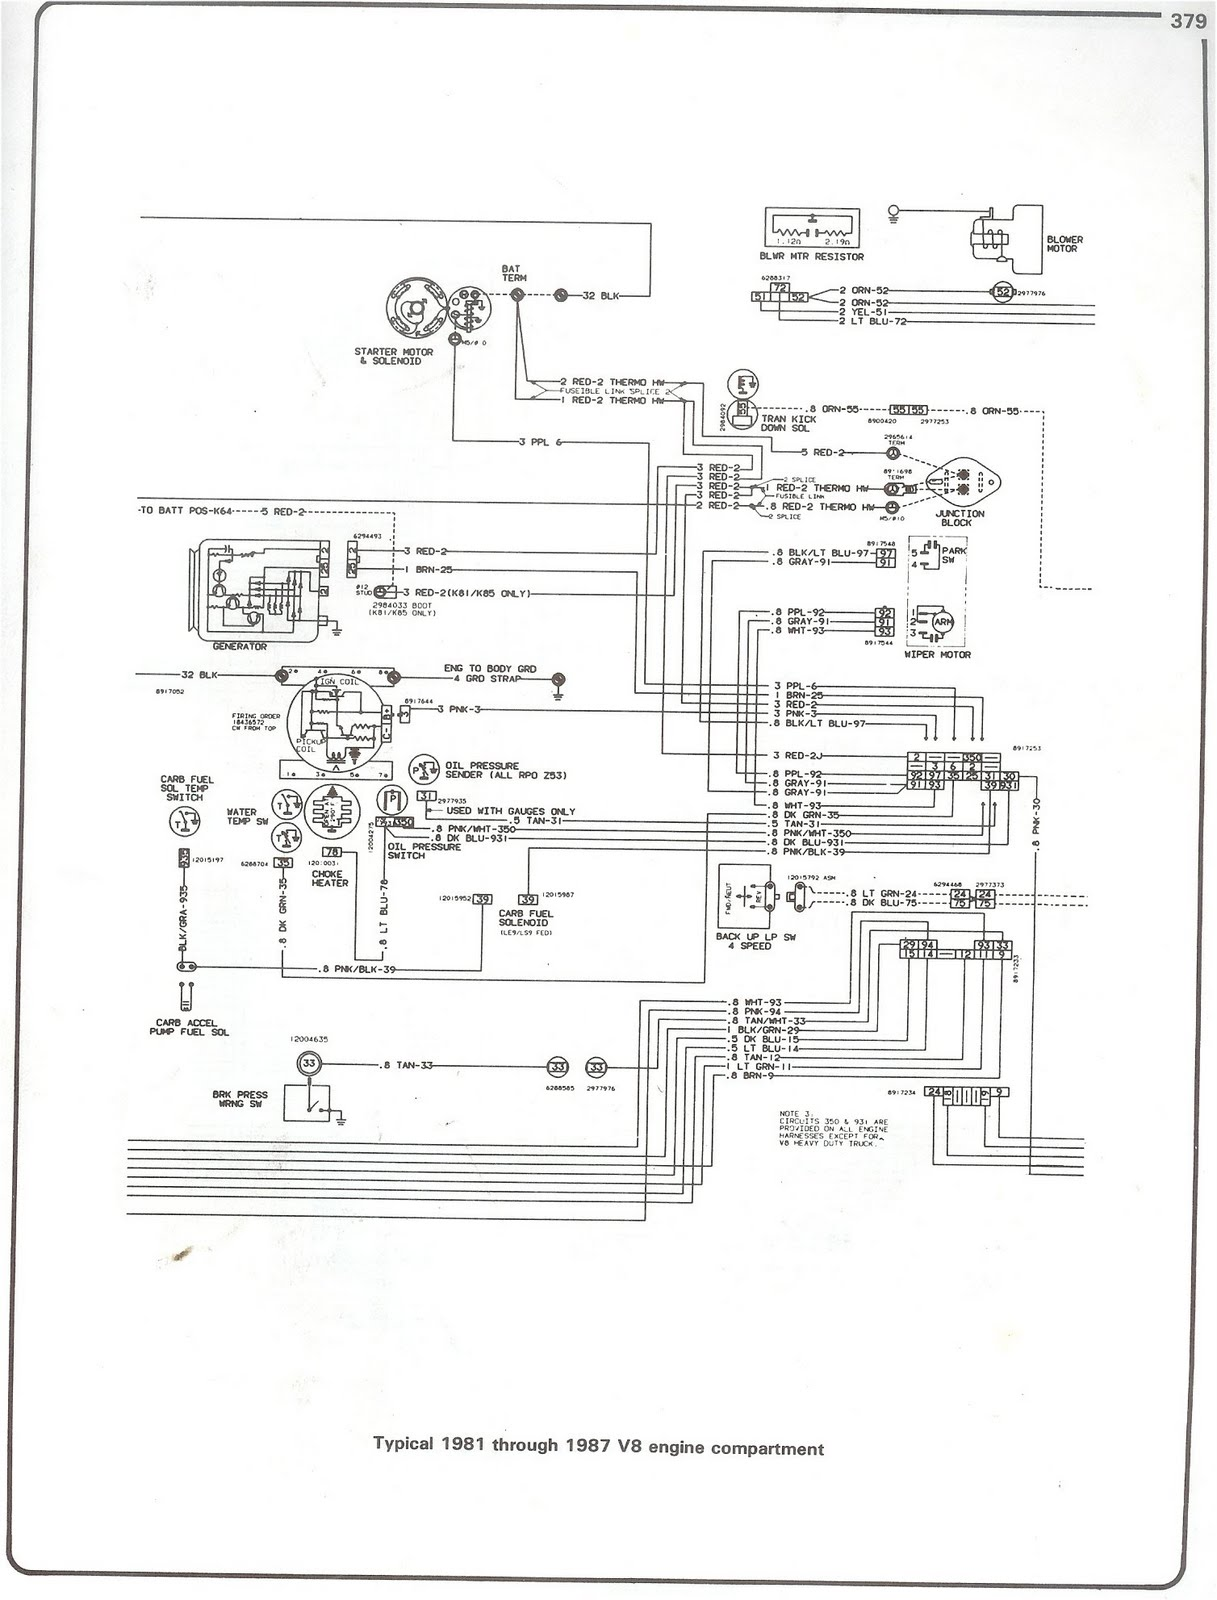 hight resolution of 81 chevy c10 wiring diagram wiring diagram technicals 81 gmc truck radio wiring diagram